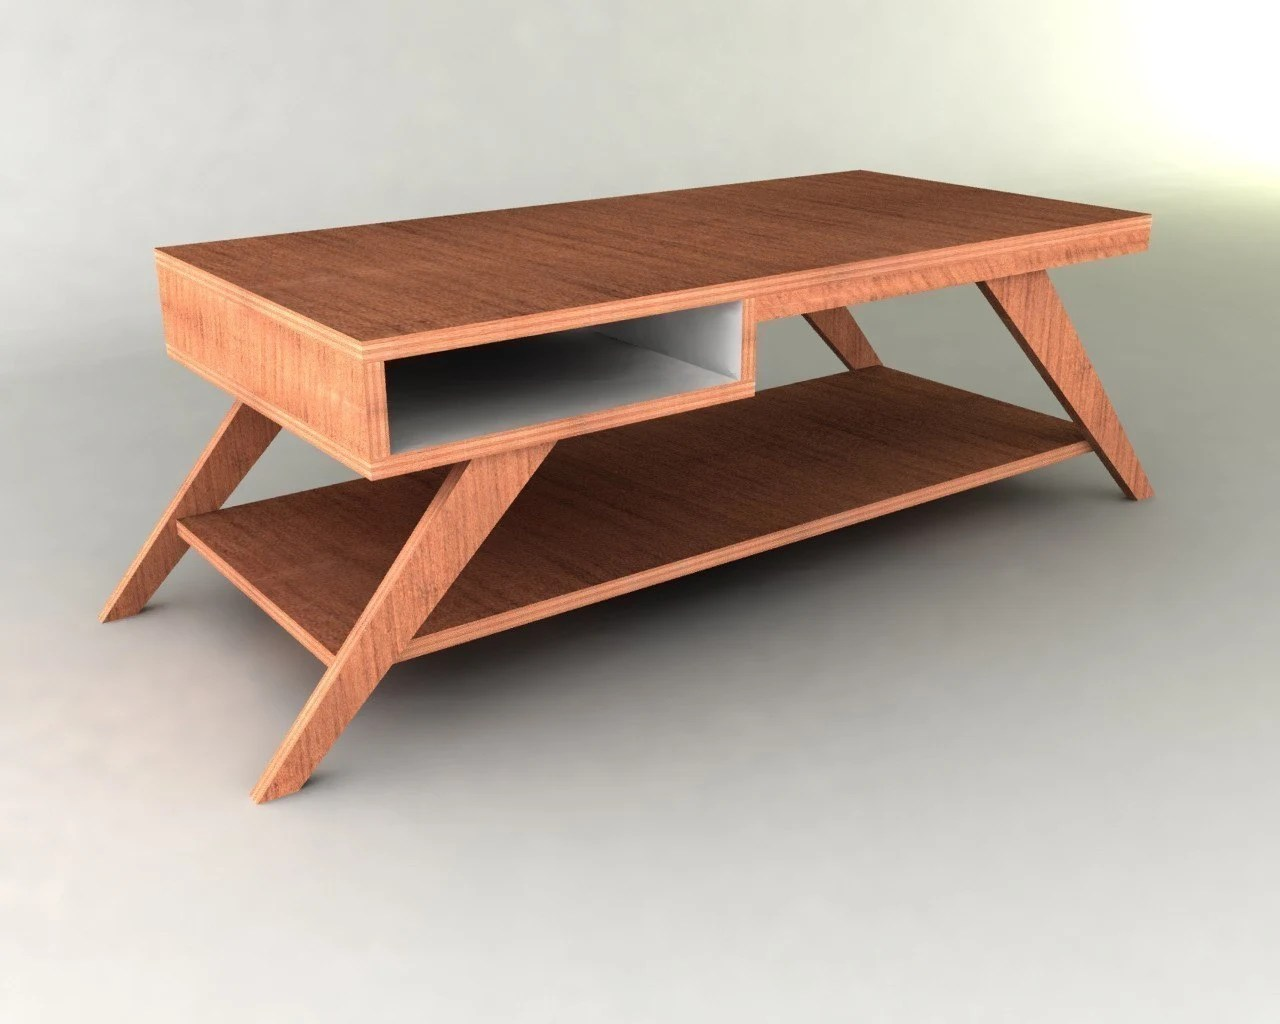 modern wood chair plans the empty poem retro eames style coffee table furniture plan